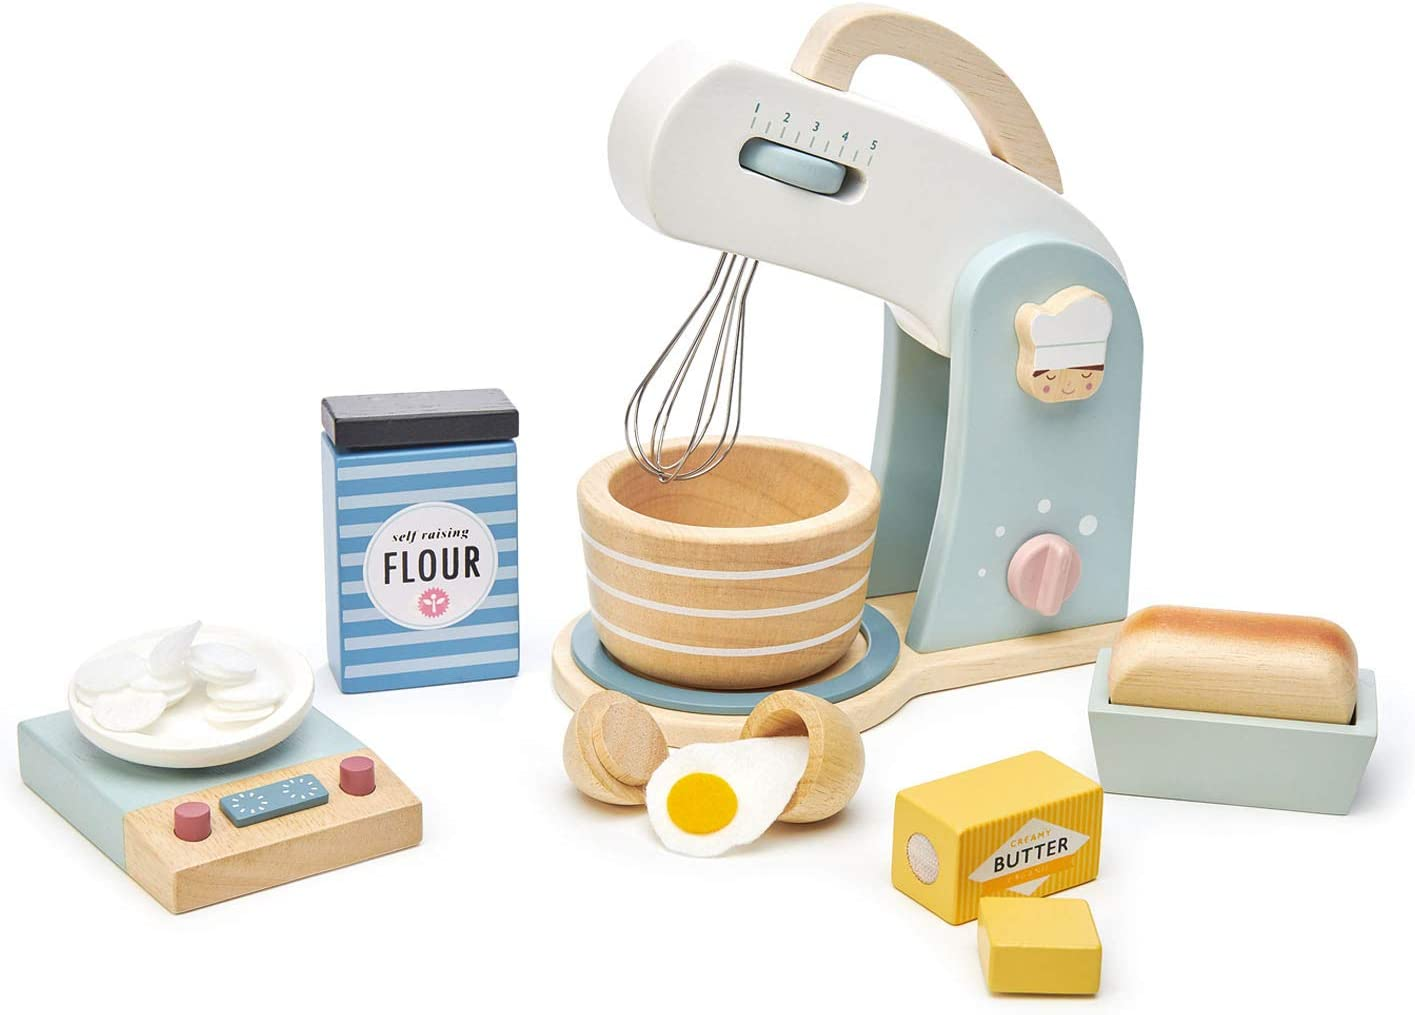 Tender Leaf Toys Mini Chef Home Baking Set – 27 Pc Wooden Baker's Mixing Set -Classic Toy for Pretend Cooking – Develops Social, Creative & Imaginative Skills – Learning Role Play – Ages 3+ Years